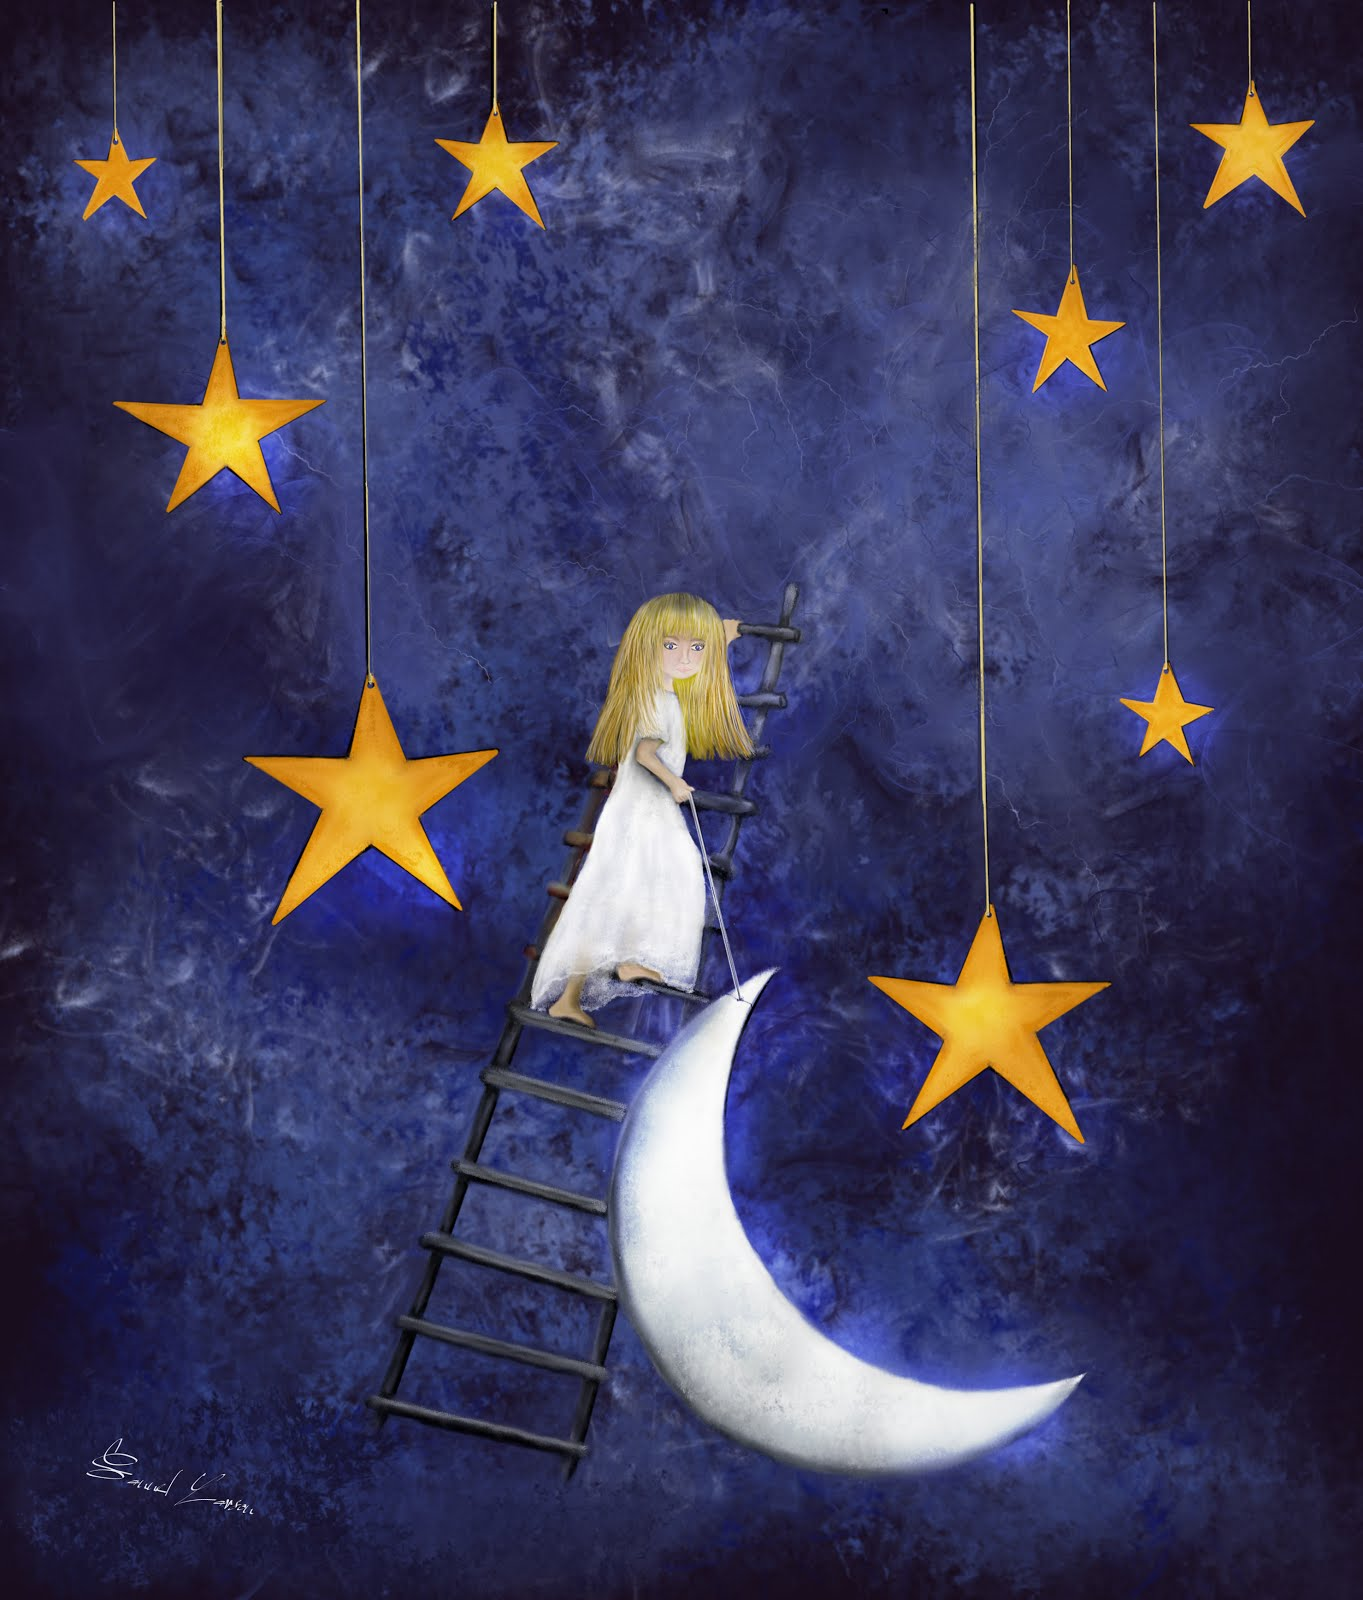 Time to go to Sleep - Fairytale Wall Art Poster